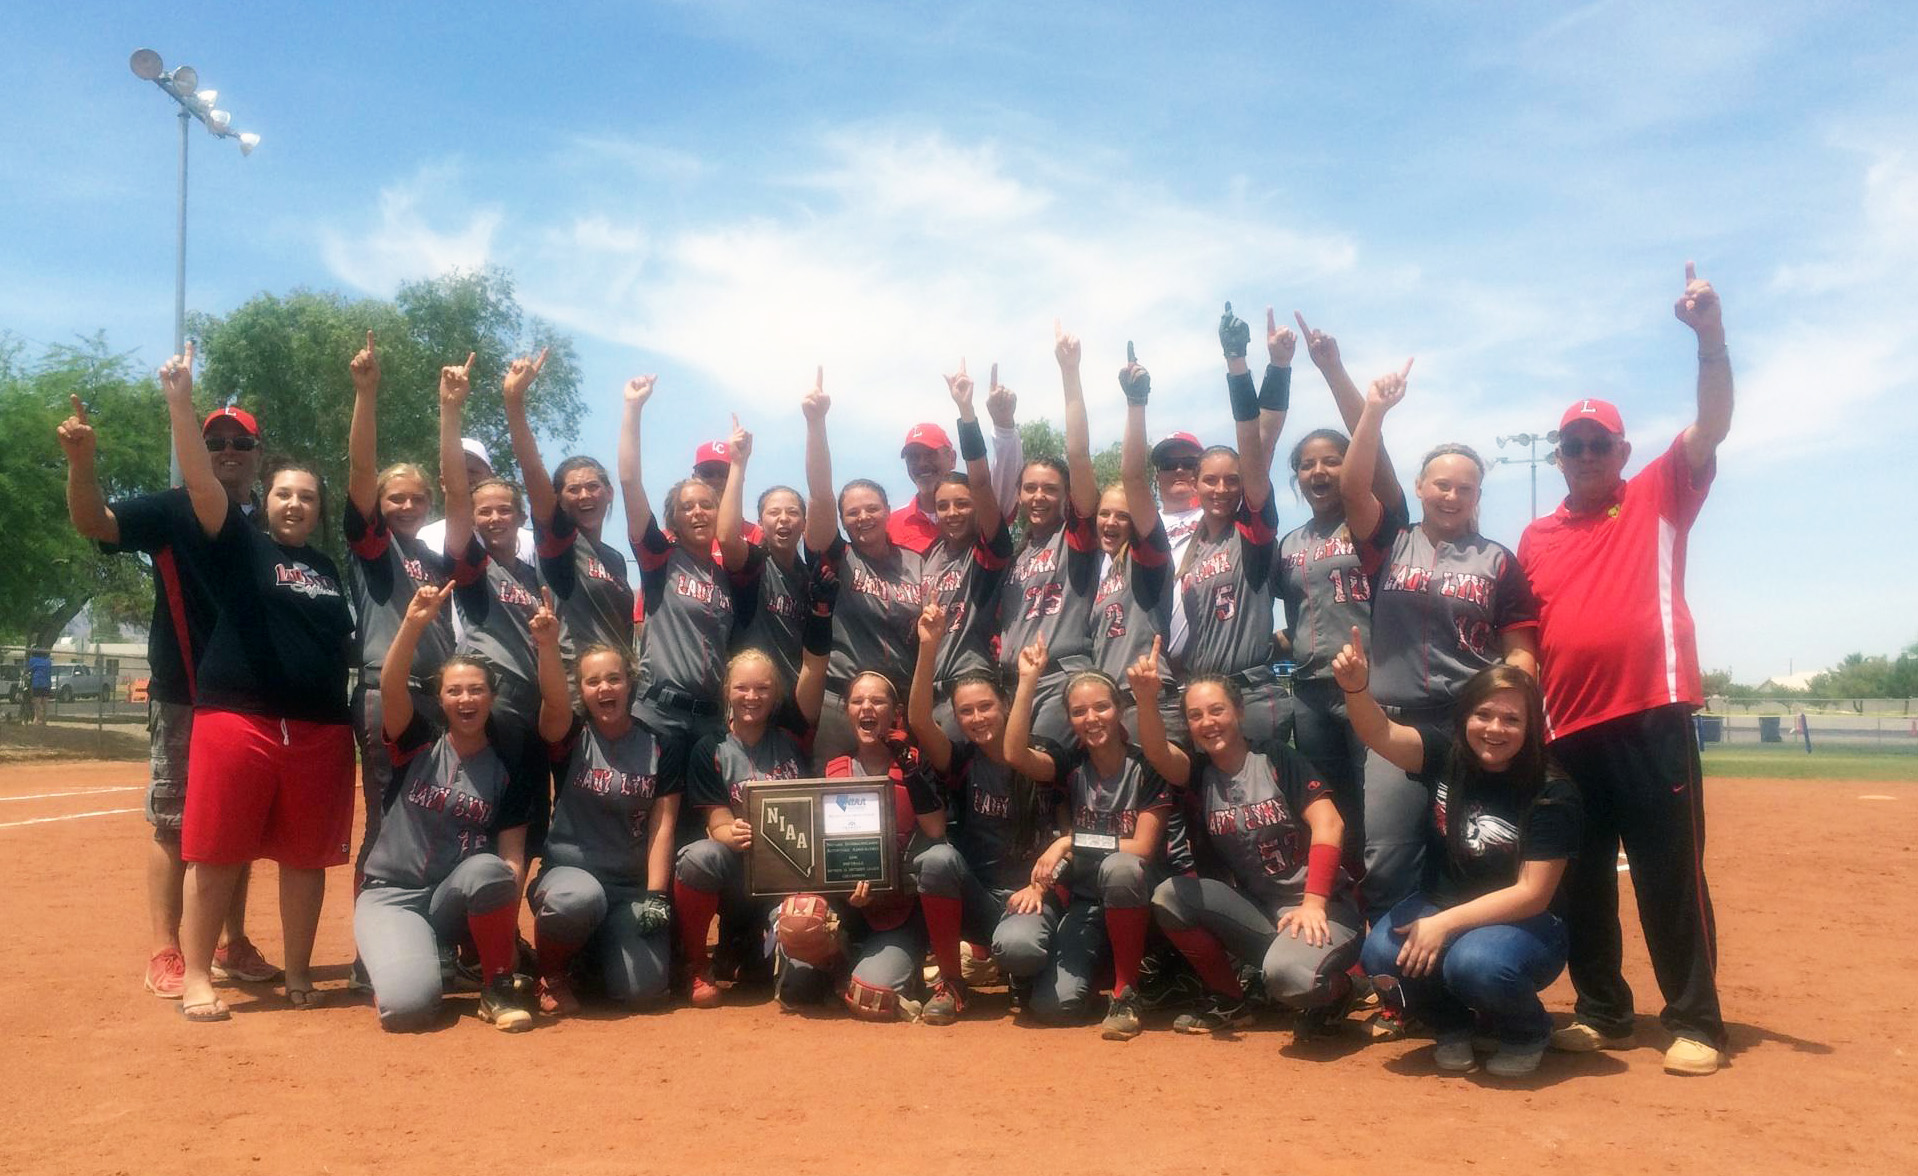 Lincoln County softball team wins fourth straight league title